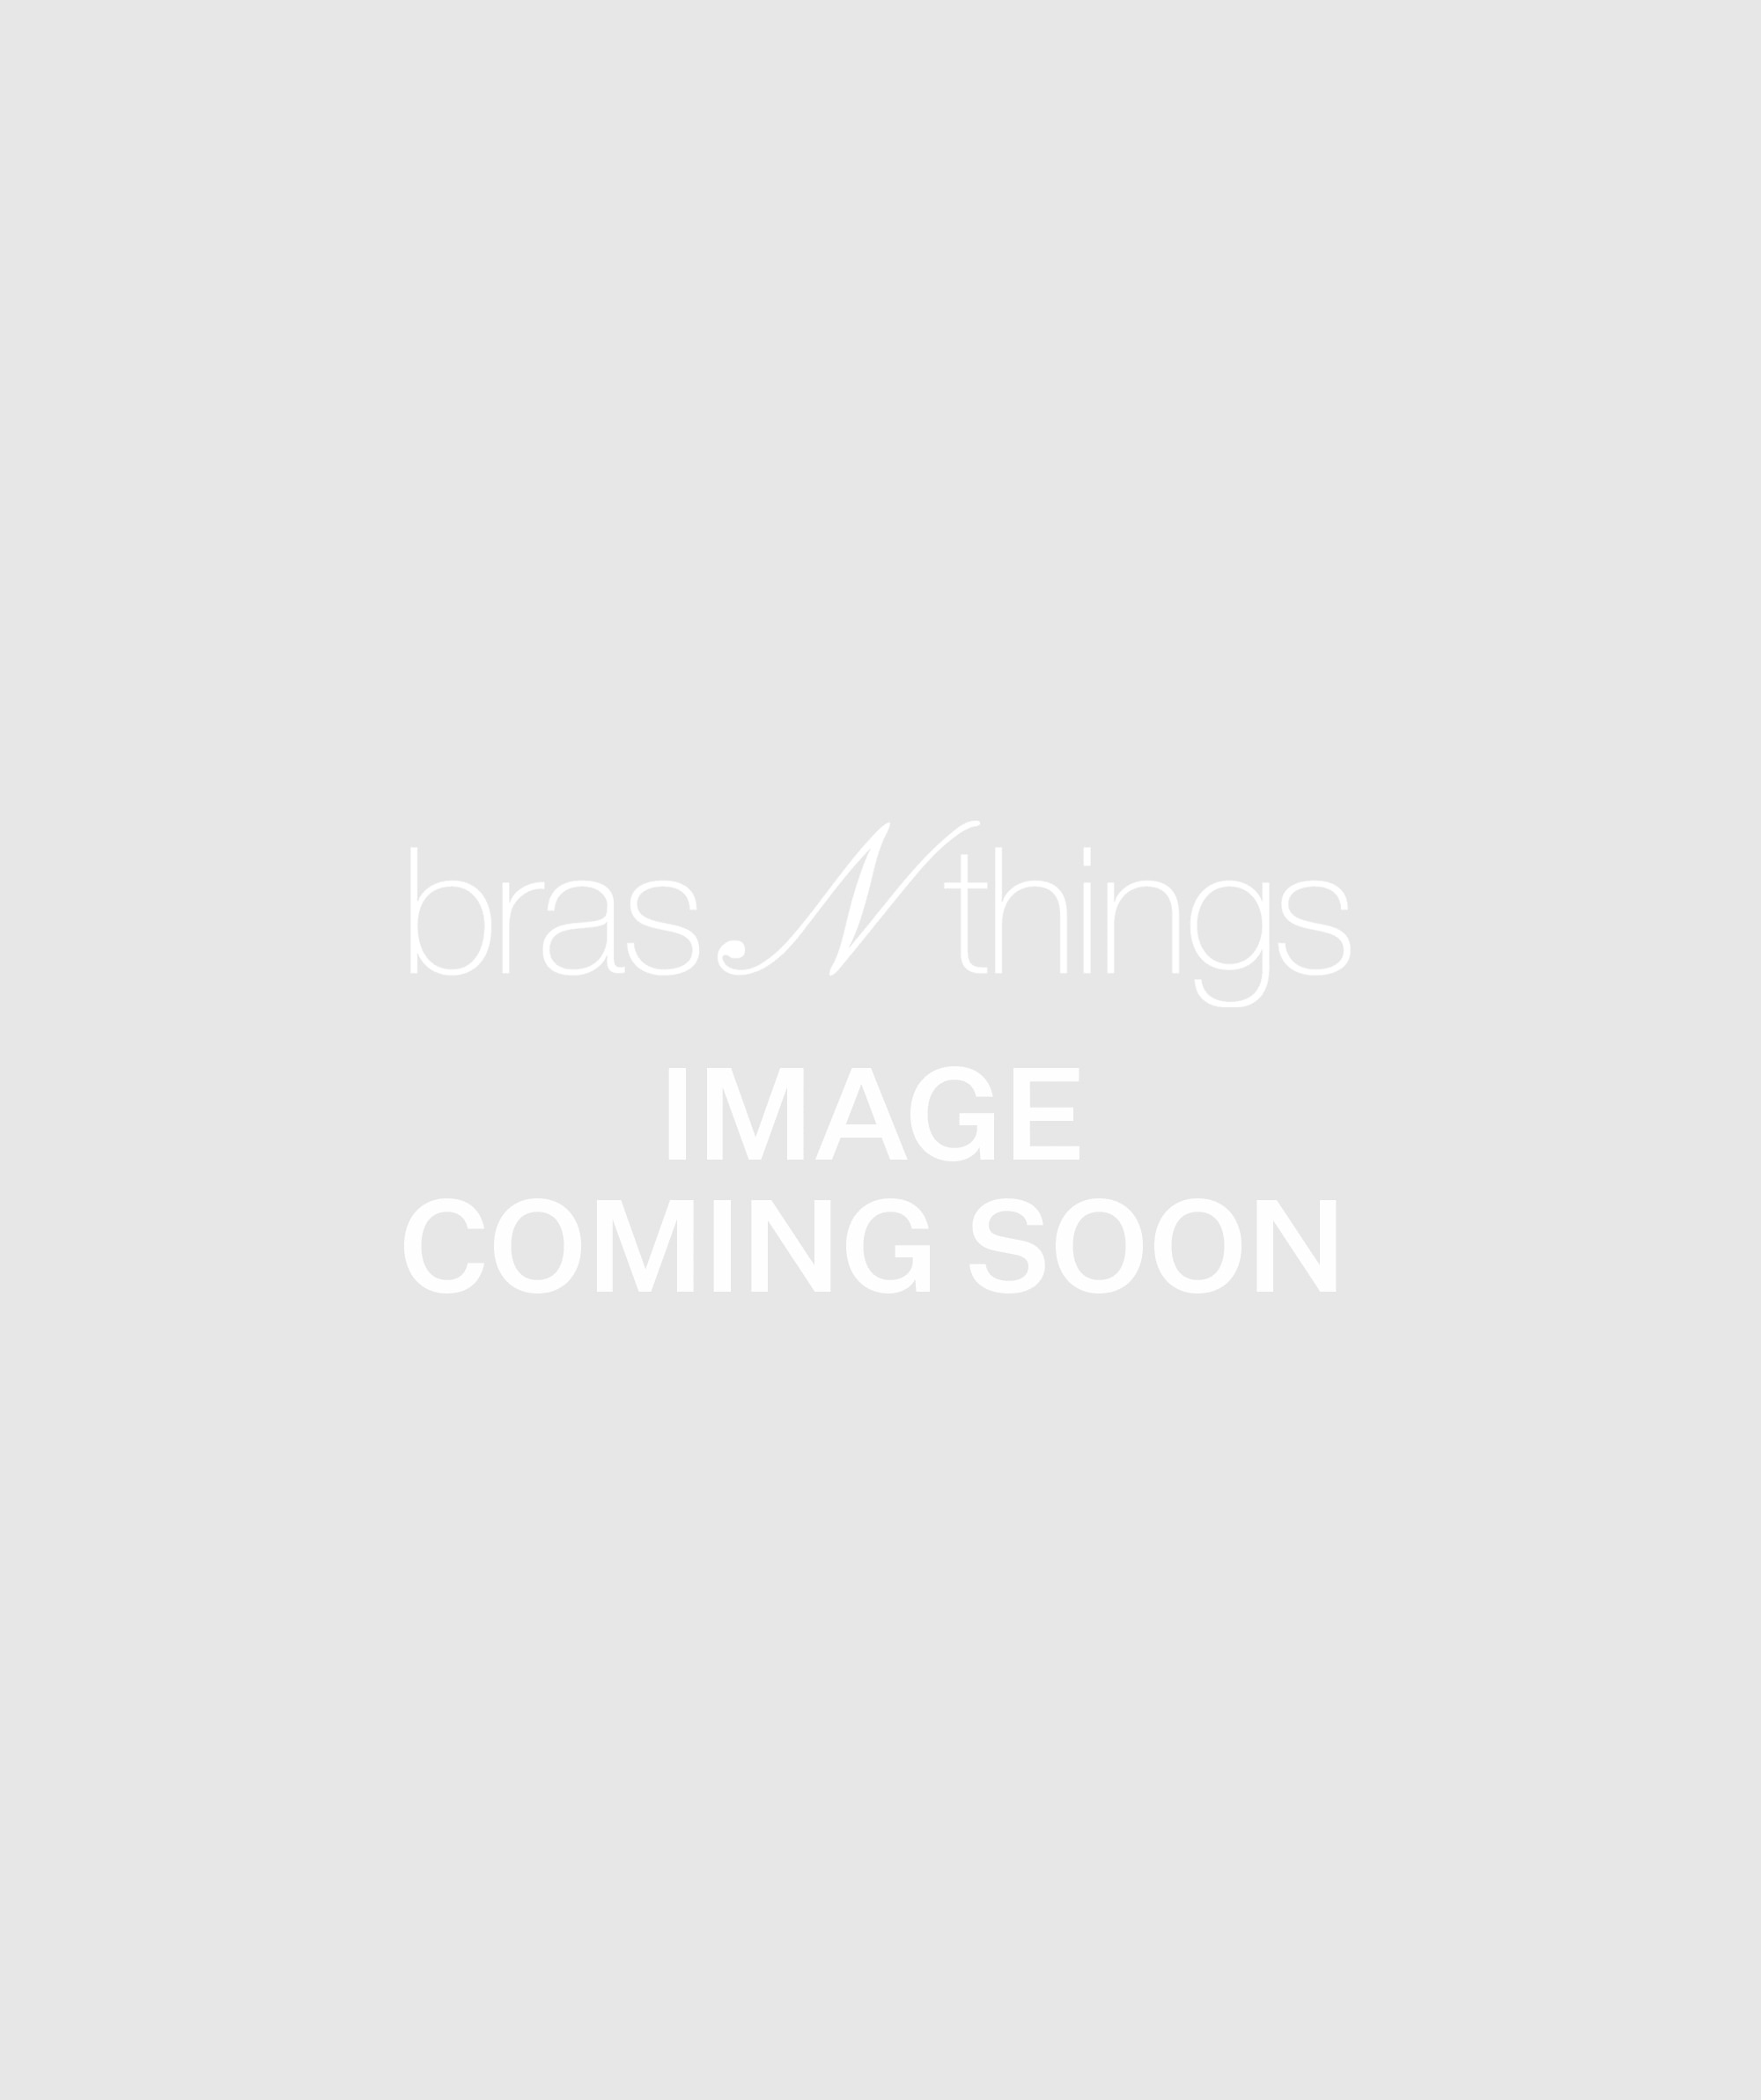 Body Bliss Strapless Push Up Bra - Nude